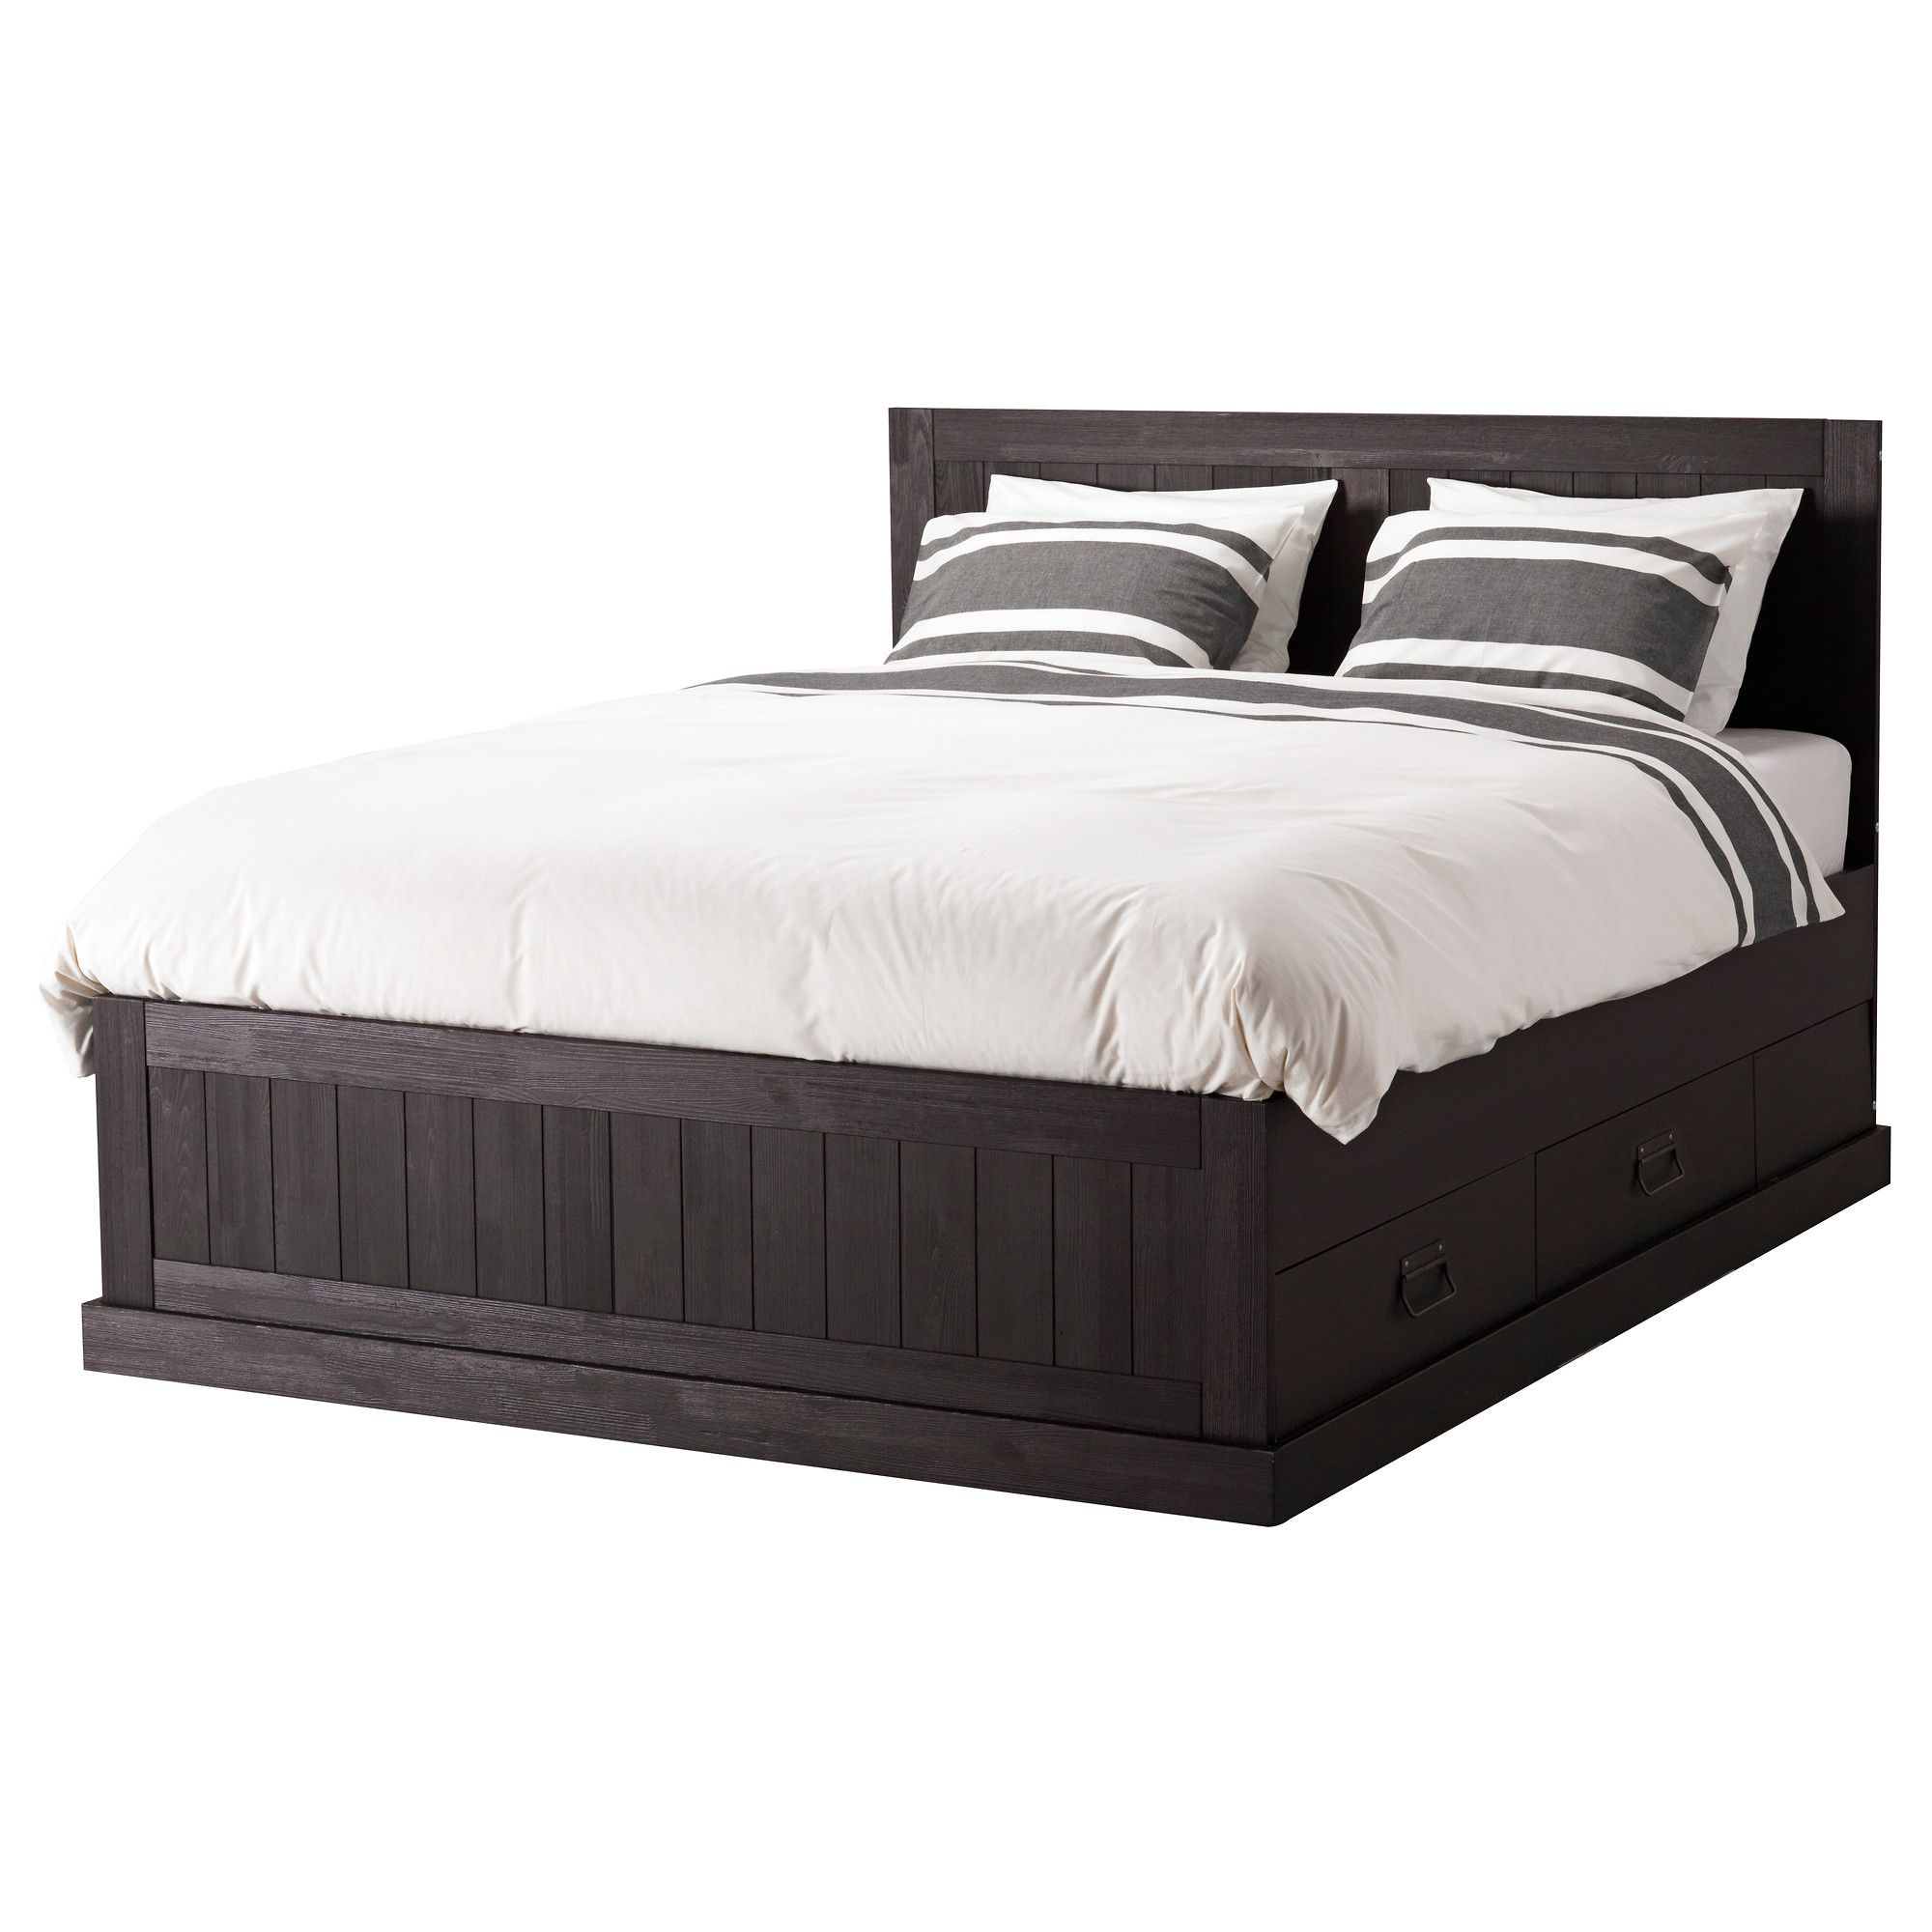 Us Furniture And Home Furnishings Bed Frame With Storage